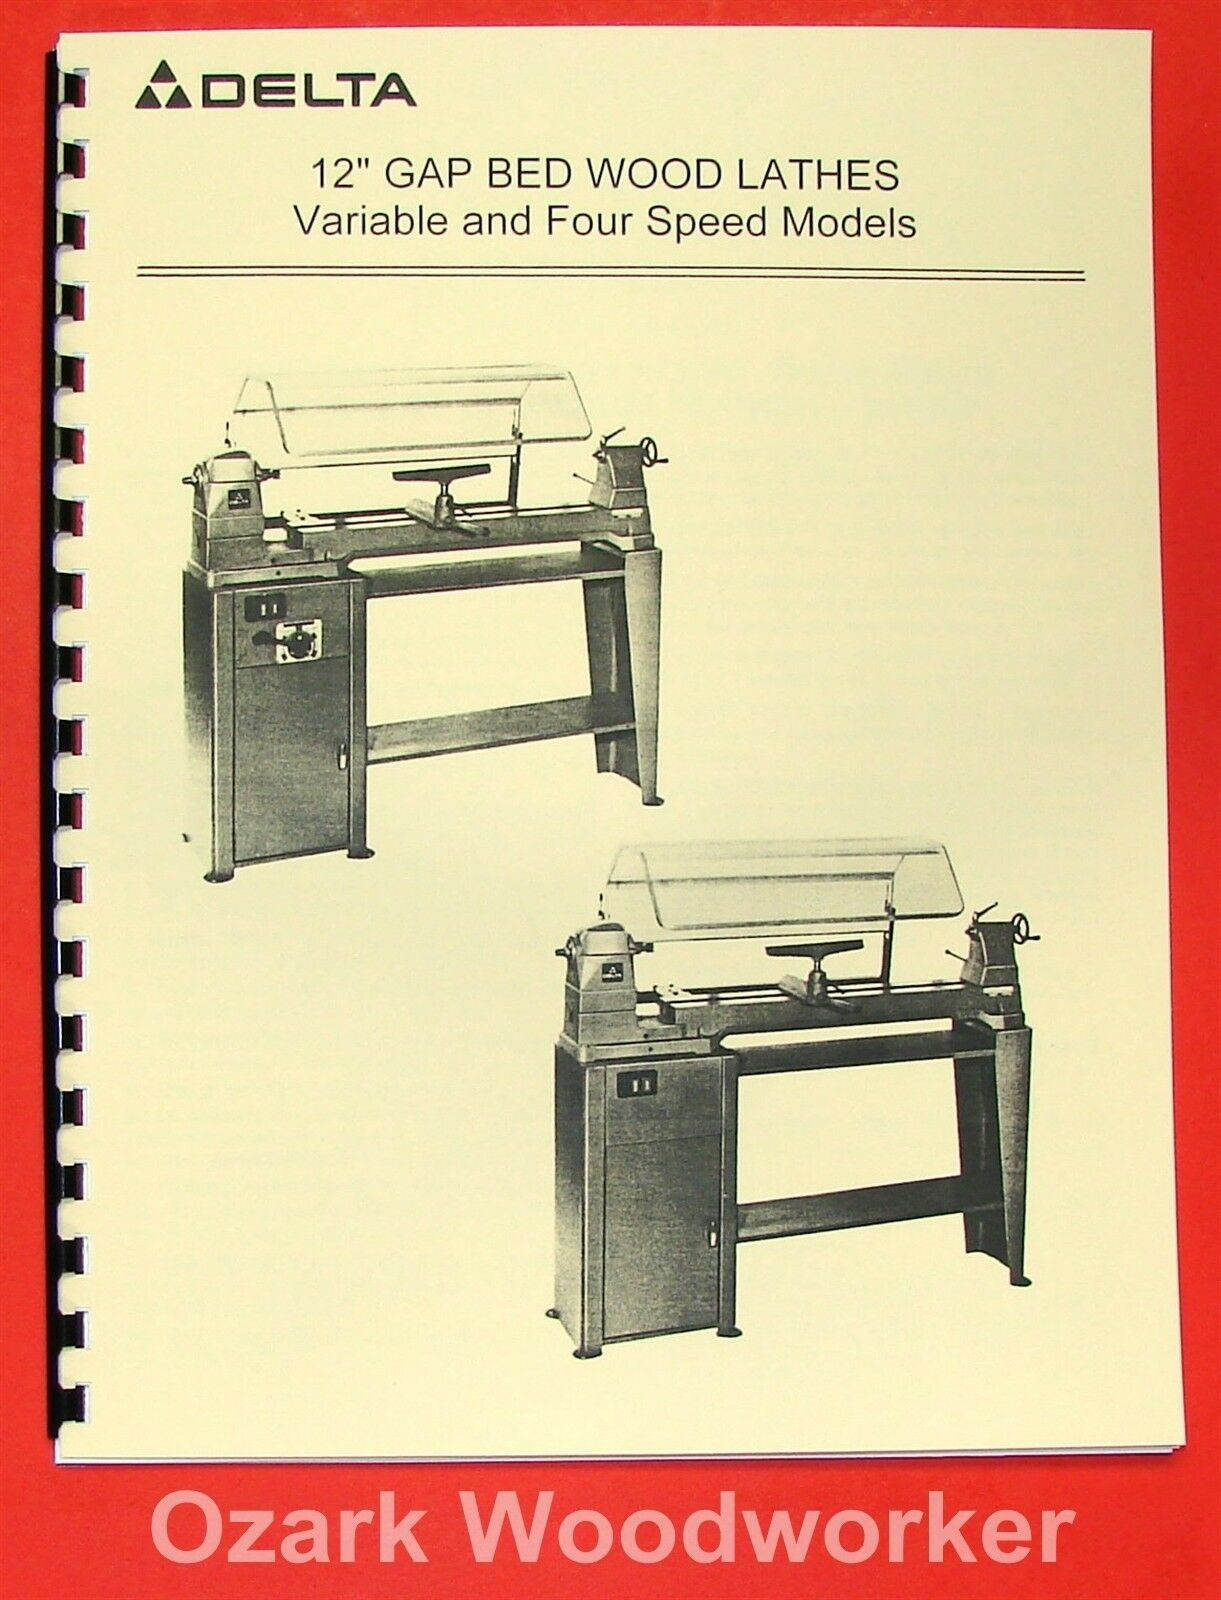 delta rockwell 12 gap bed wood lathe operating parts manual 0198 rh picclick com What Are the Parts of a Wood Lathe Craftsman Wood Lathe Parts